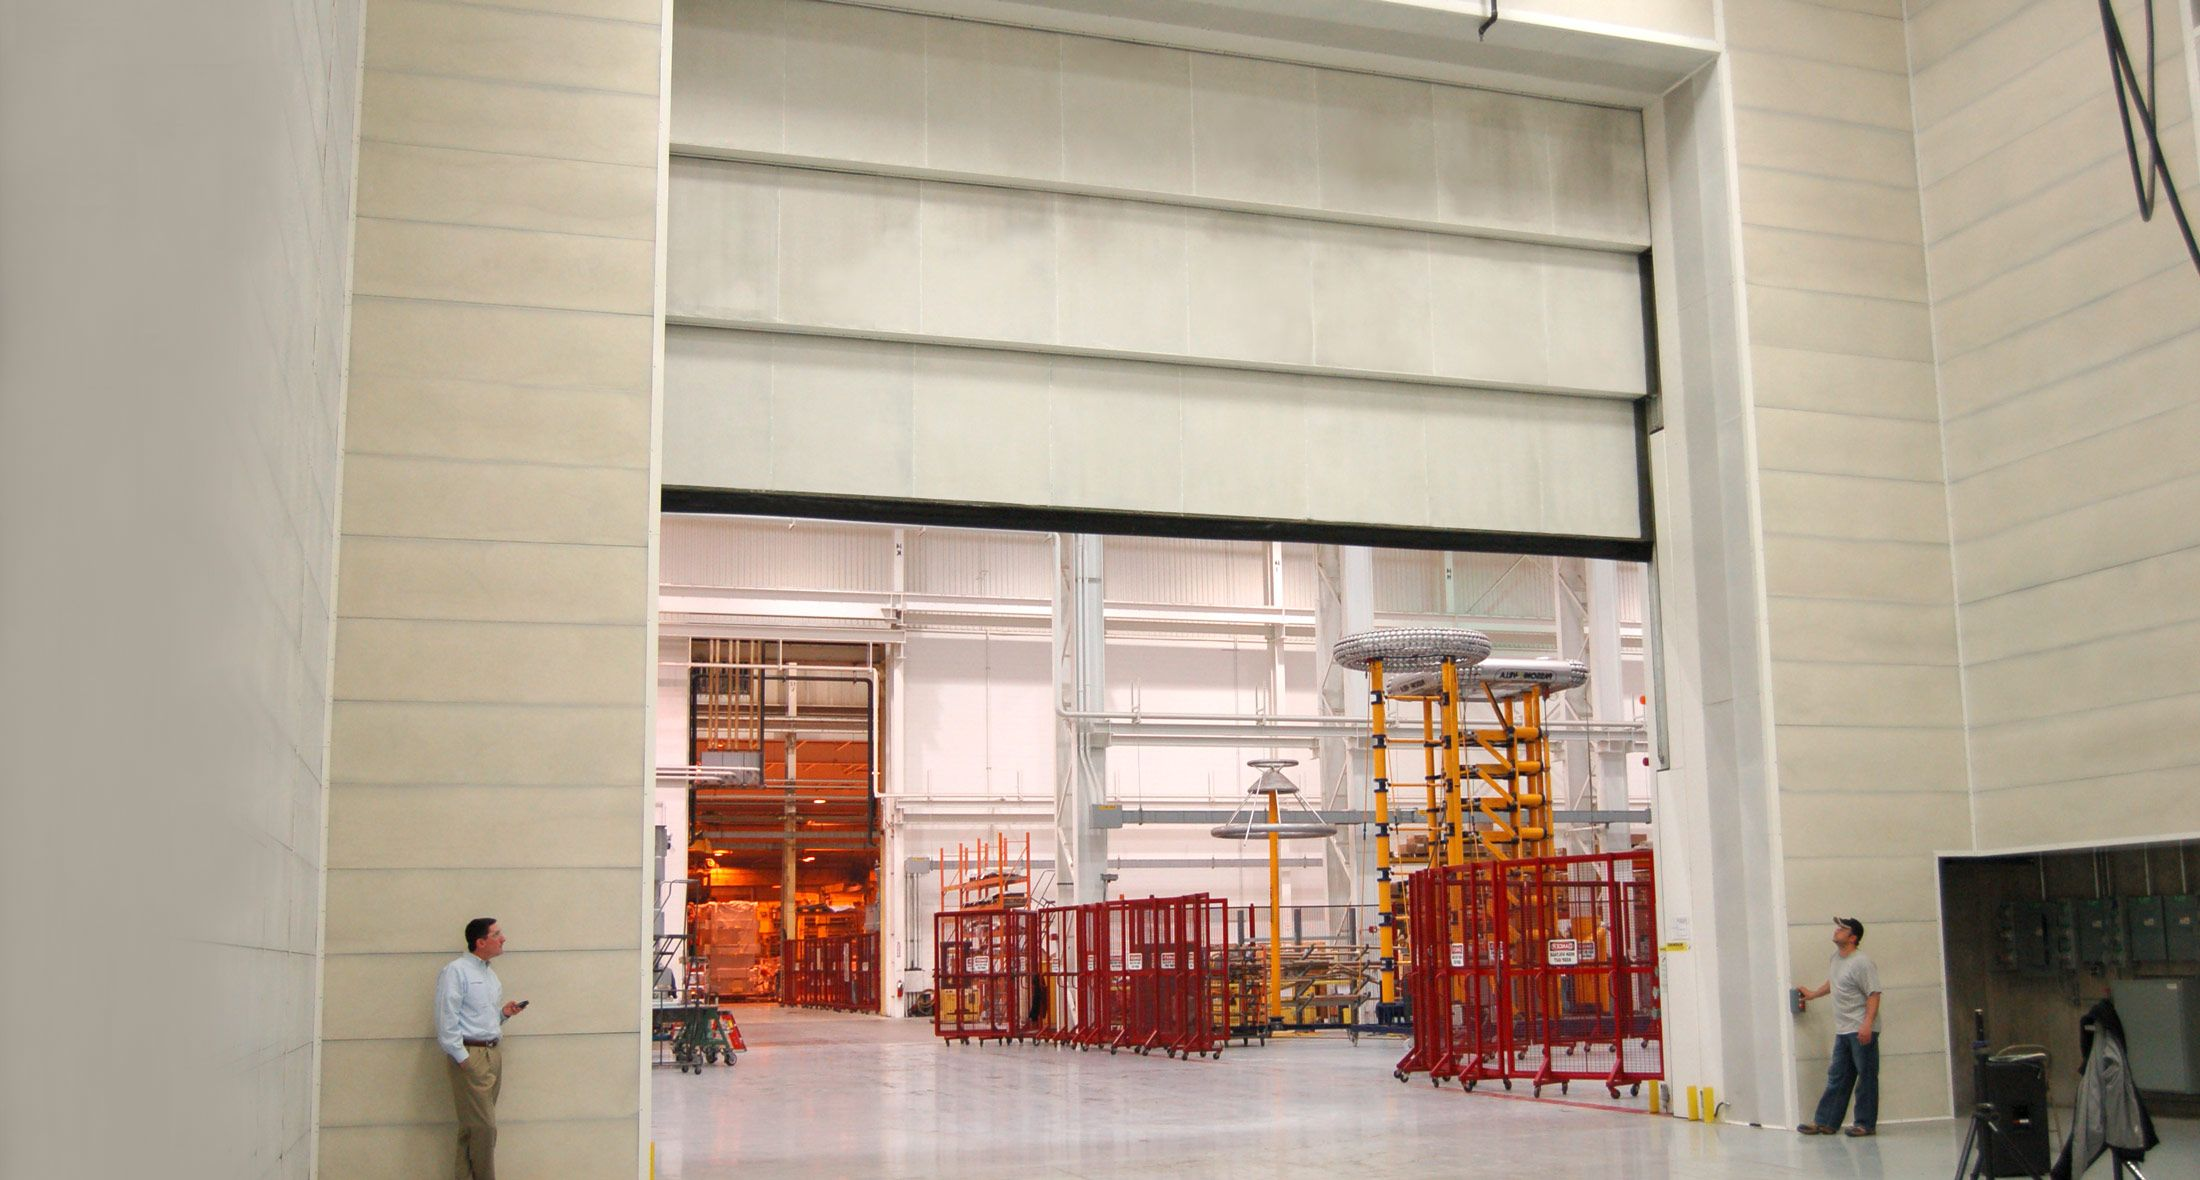 Industrial and Architectural doors